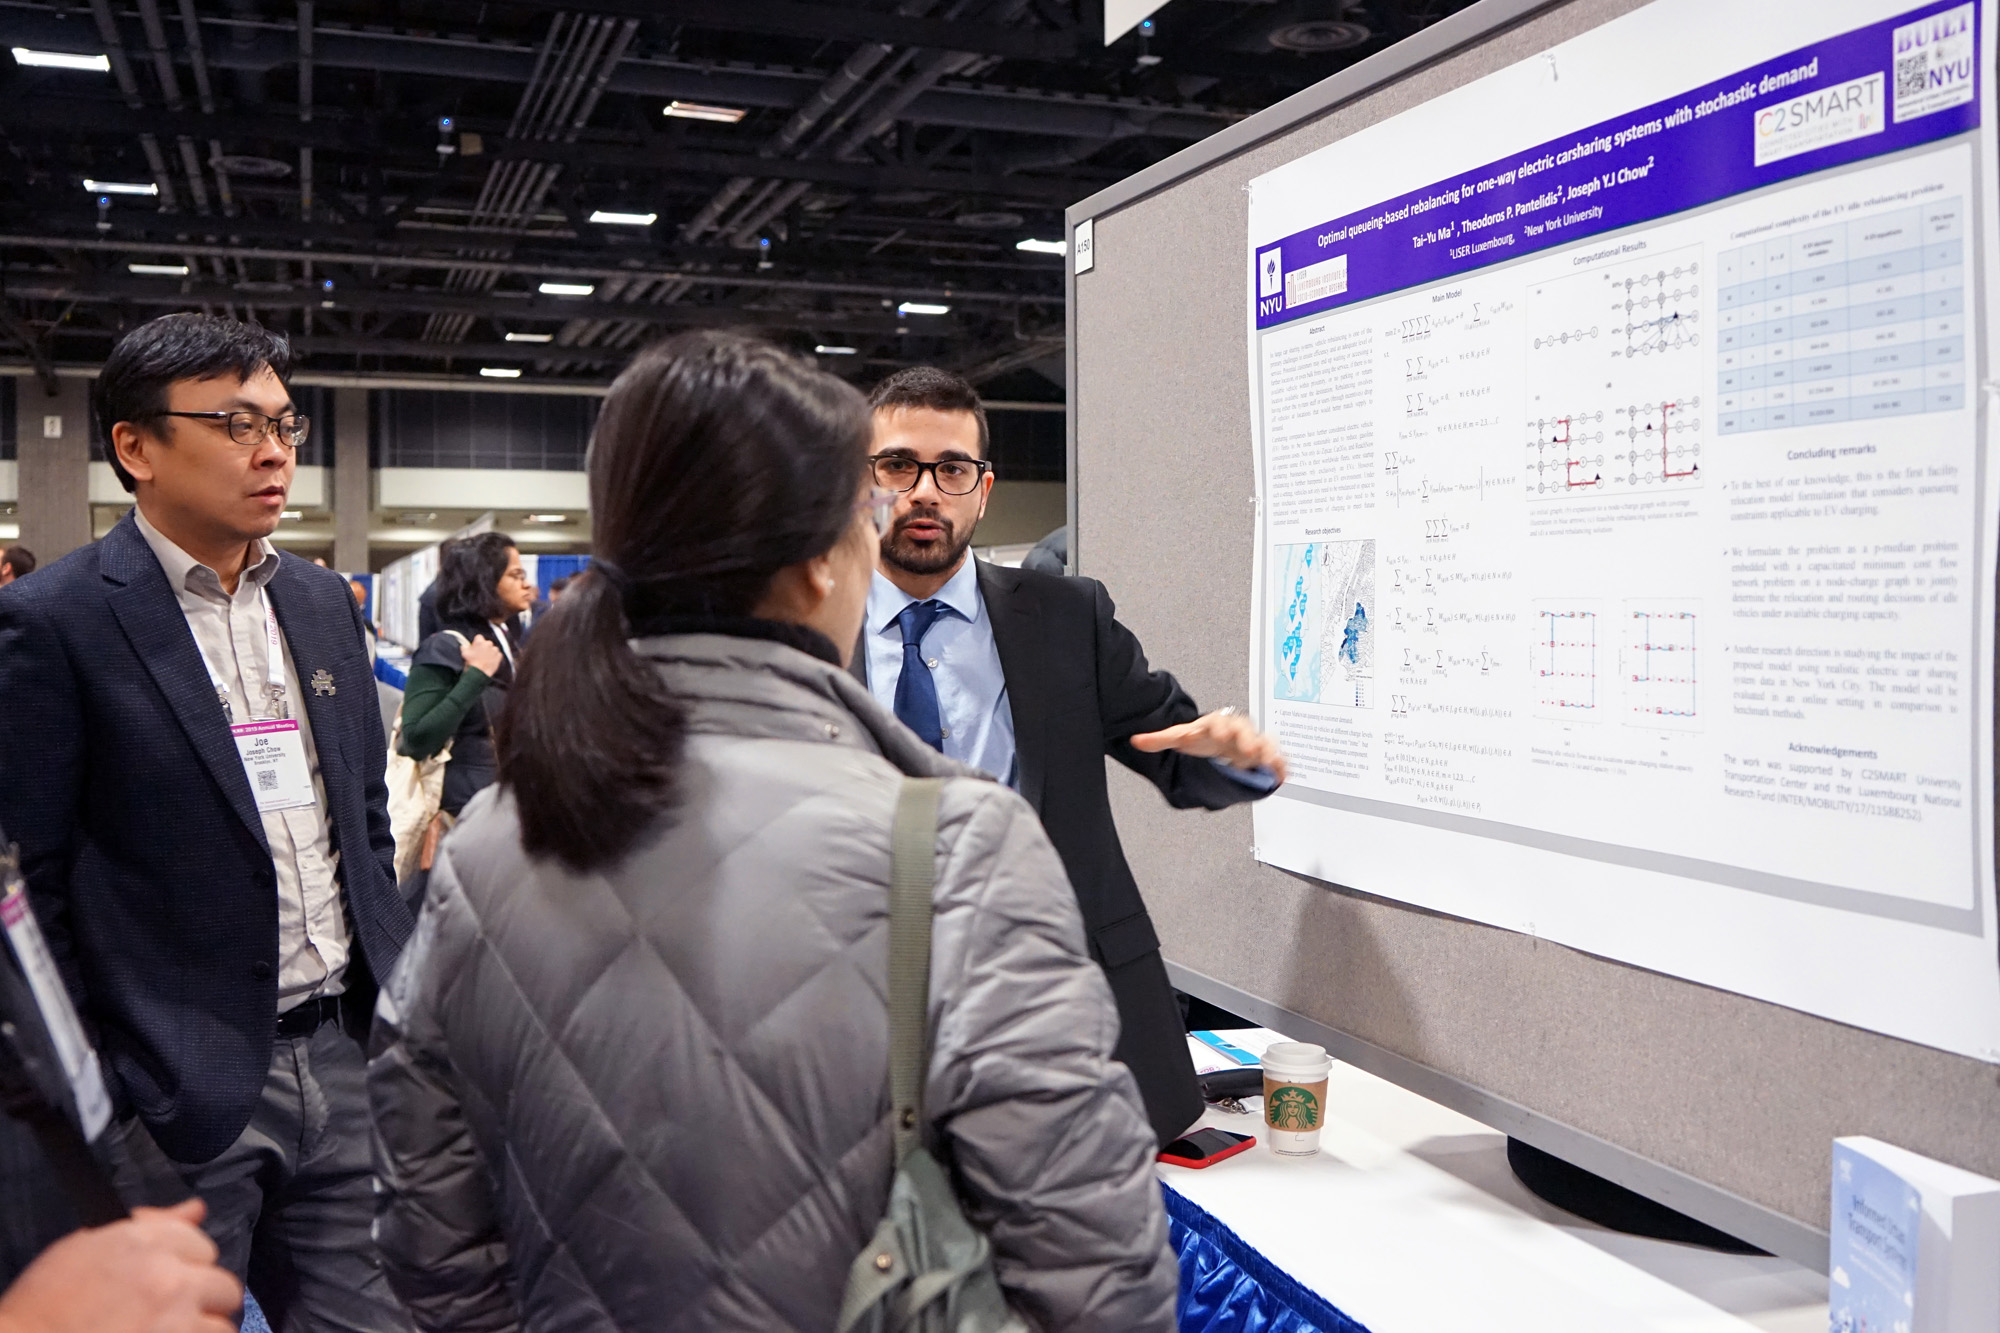 Professor Joseph Chow and graduate student Ted Pantelidis discuss a research poster with conference attendees.